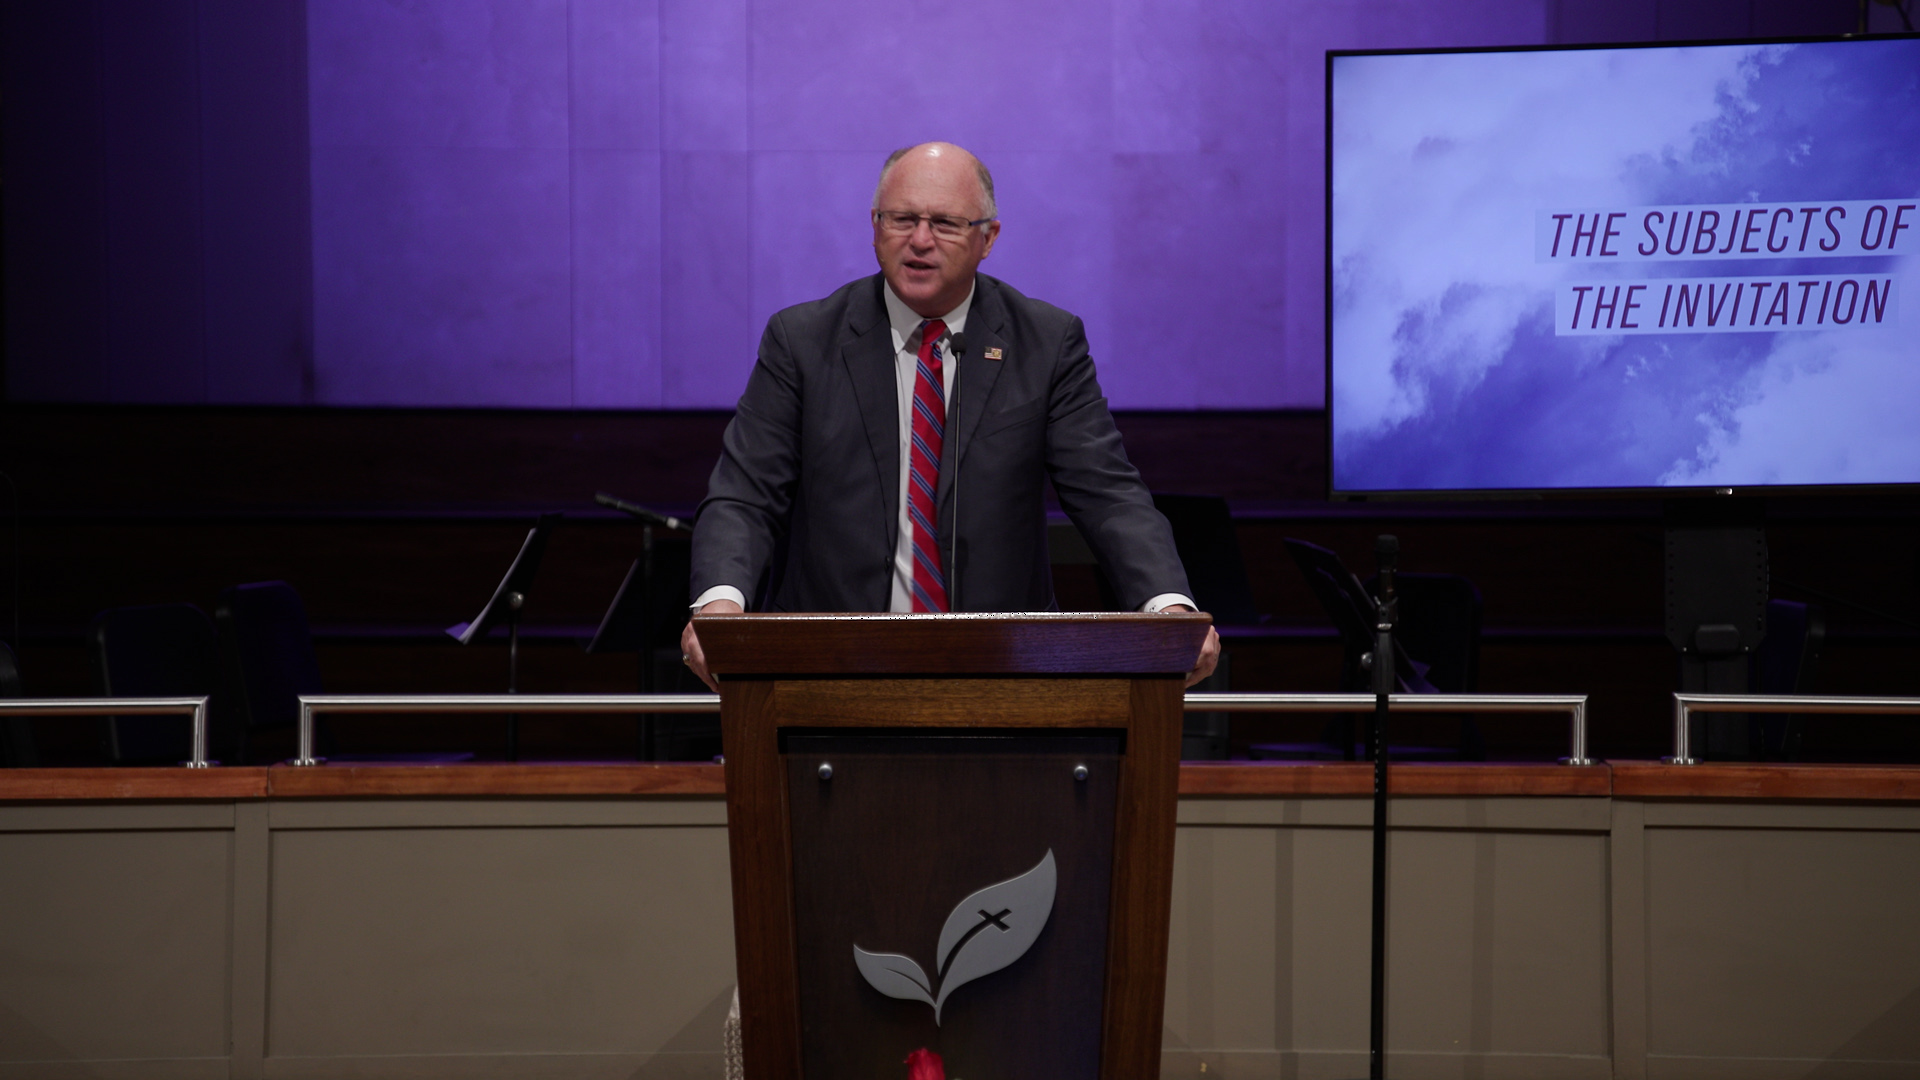 Pastor Paul Chappell: The Coming False Church